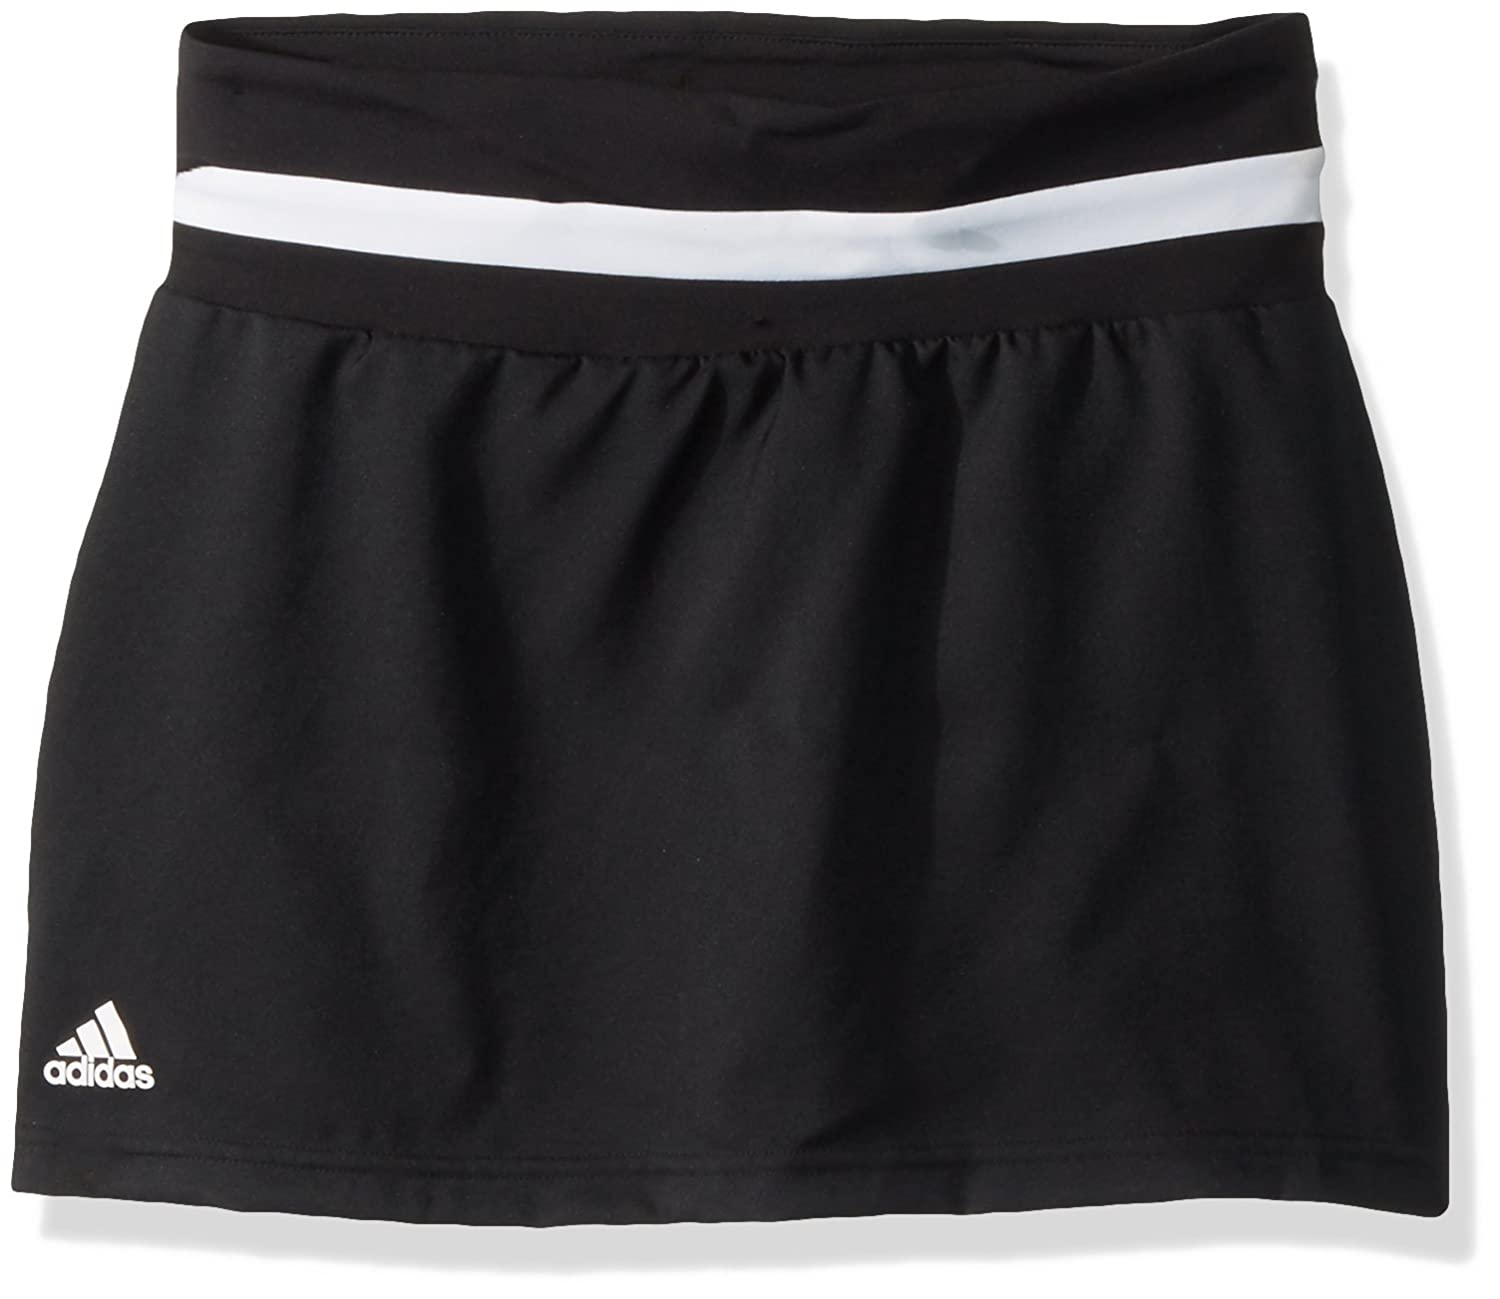 f32329d4dced0 Amazon.com   adidas Girls Youth Tennis Girls Club Skirt   Sports   Outdoors